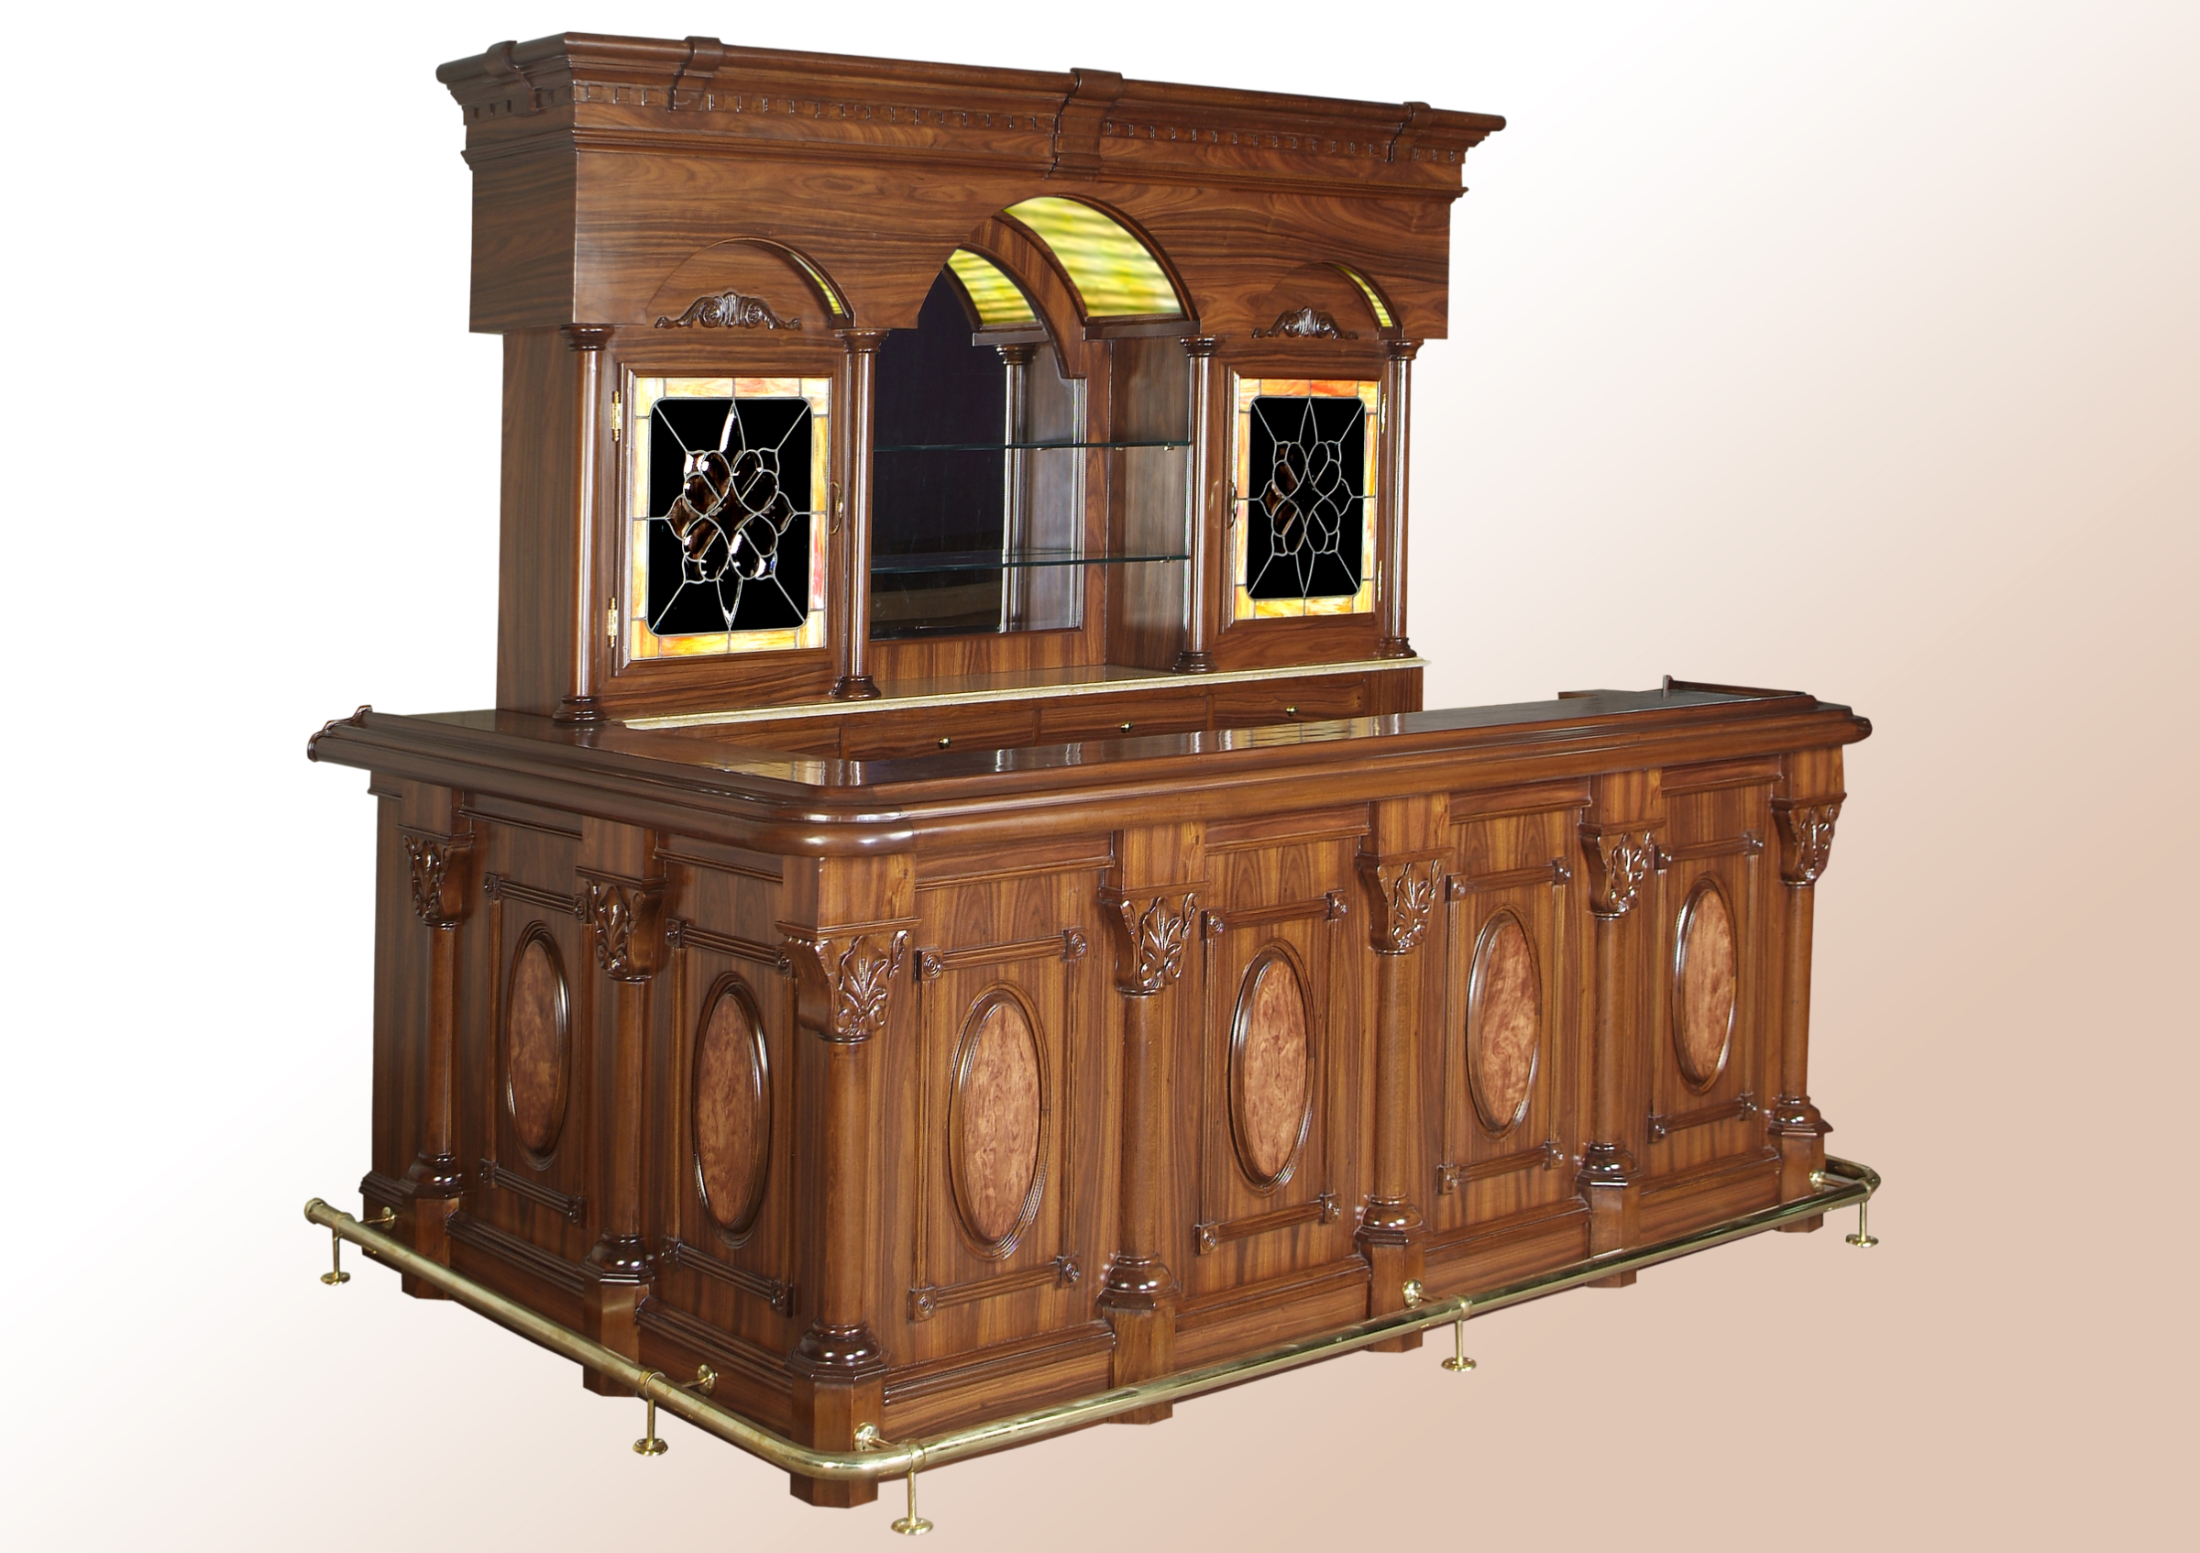 Bar 270BA – 10ft Rosewood Bar with Oval Panels & Marble Top